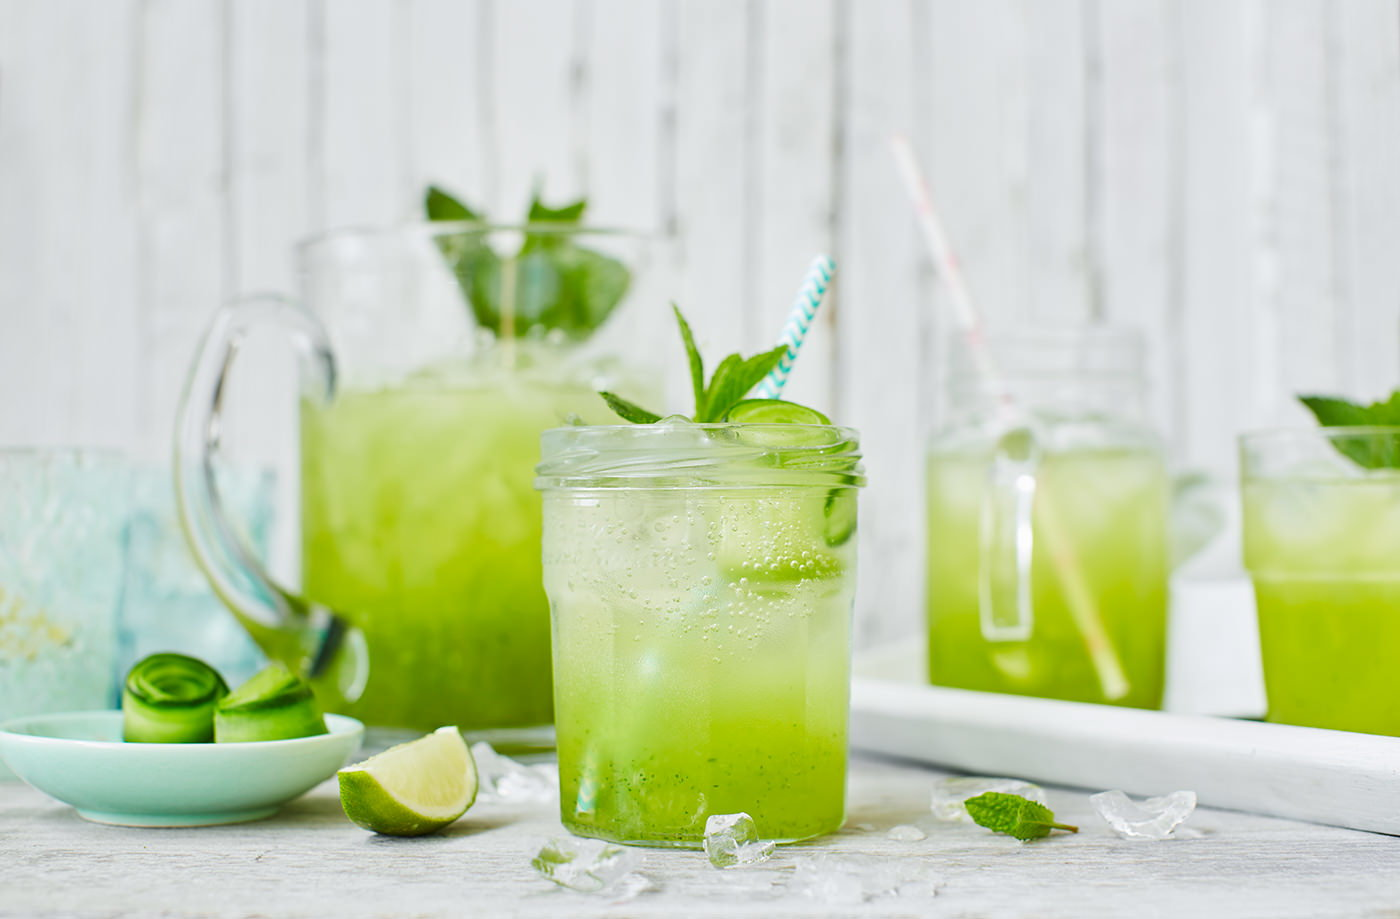 Glass & pitcher full of cucumber, lime & elderflower cooler garnished with mint and lime